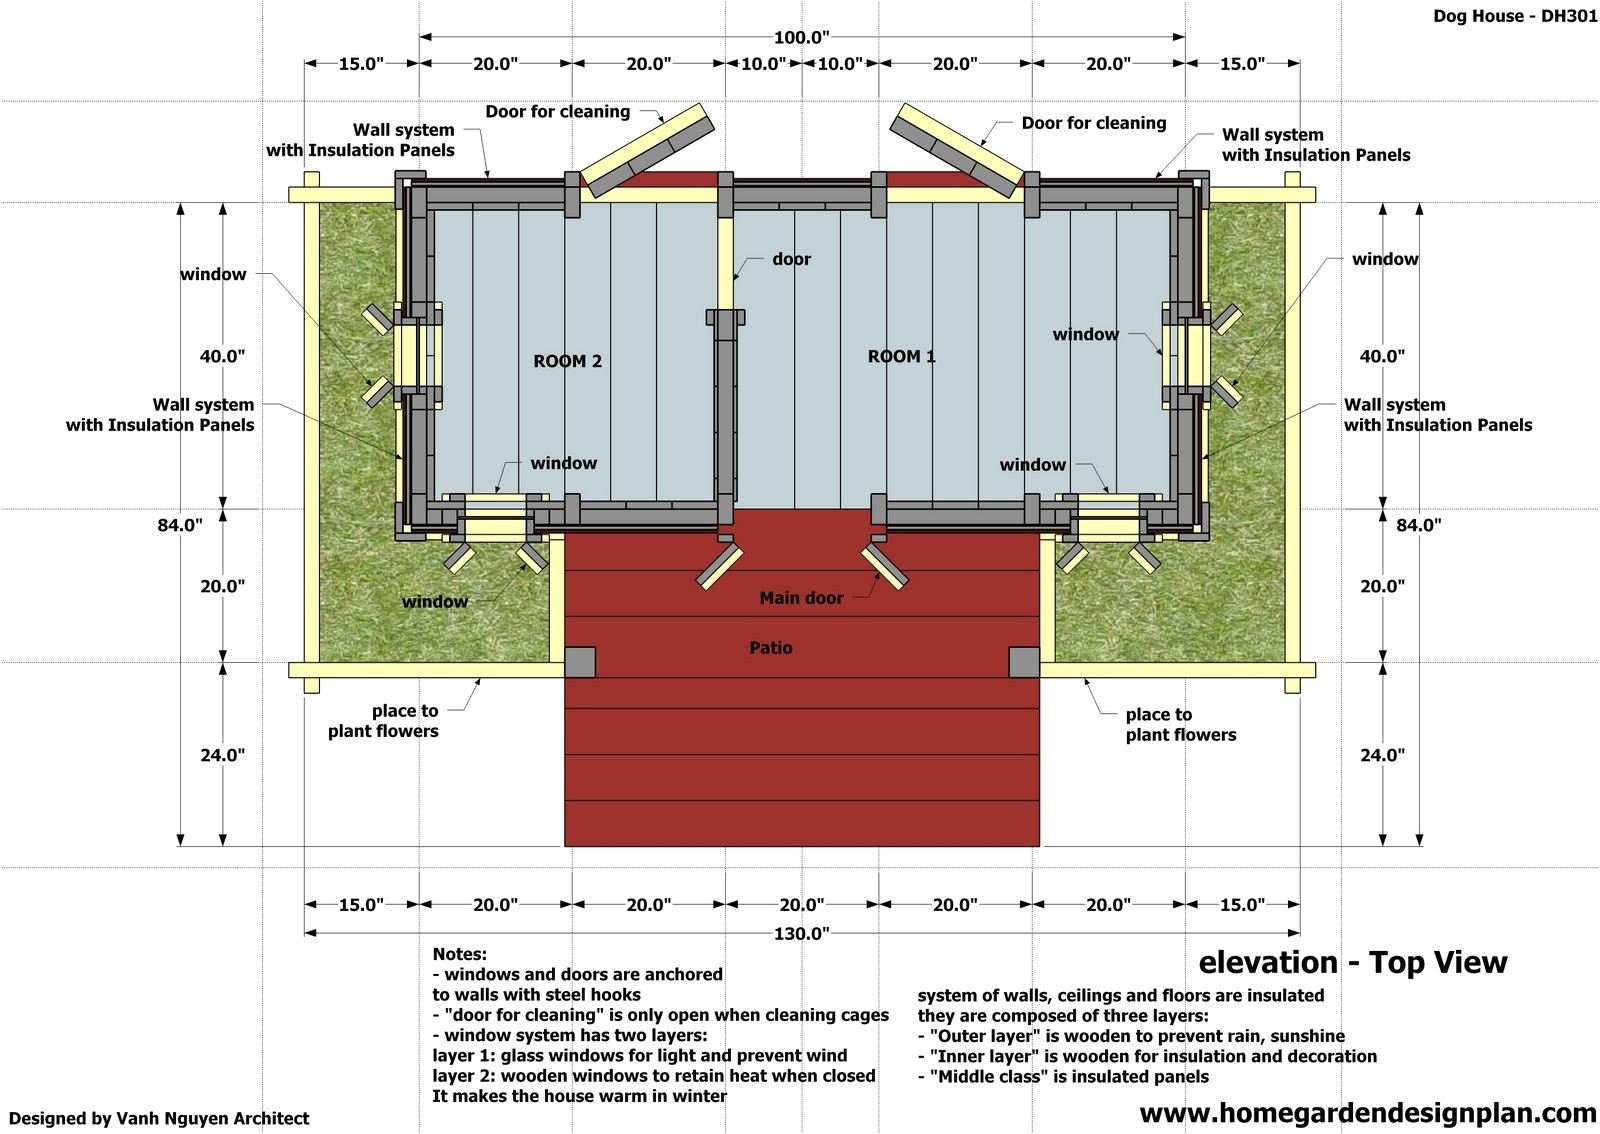 guide free dog house building plans